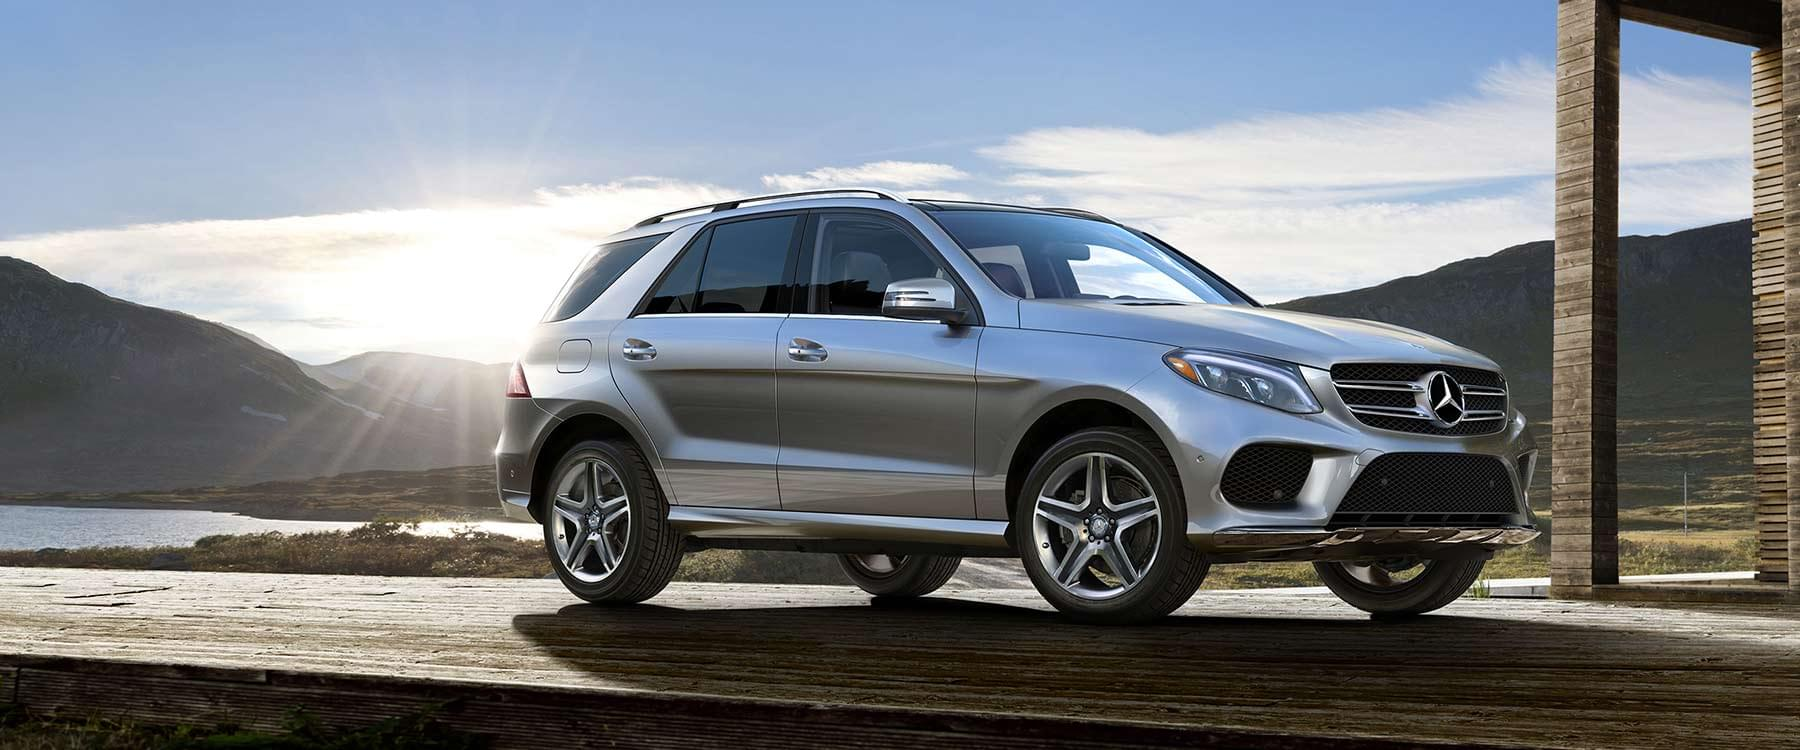 the 2018 mercedes benz gle 350 is as cozy as it is capable. Black Bedroom Furniture Sets. Home Design Ideas